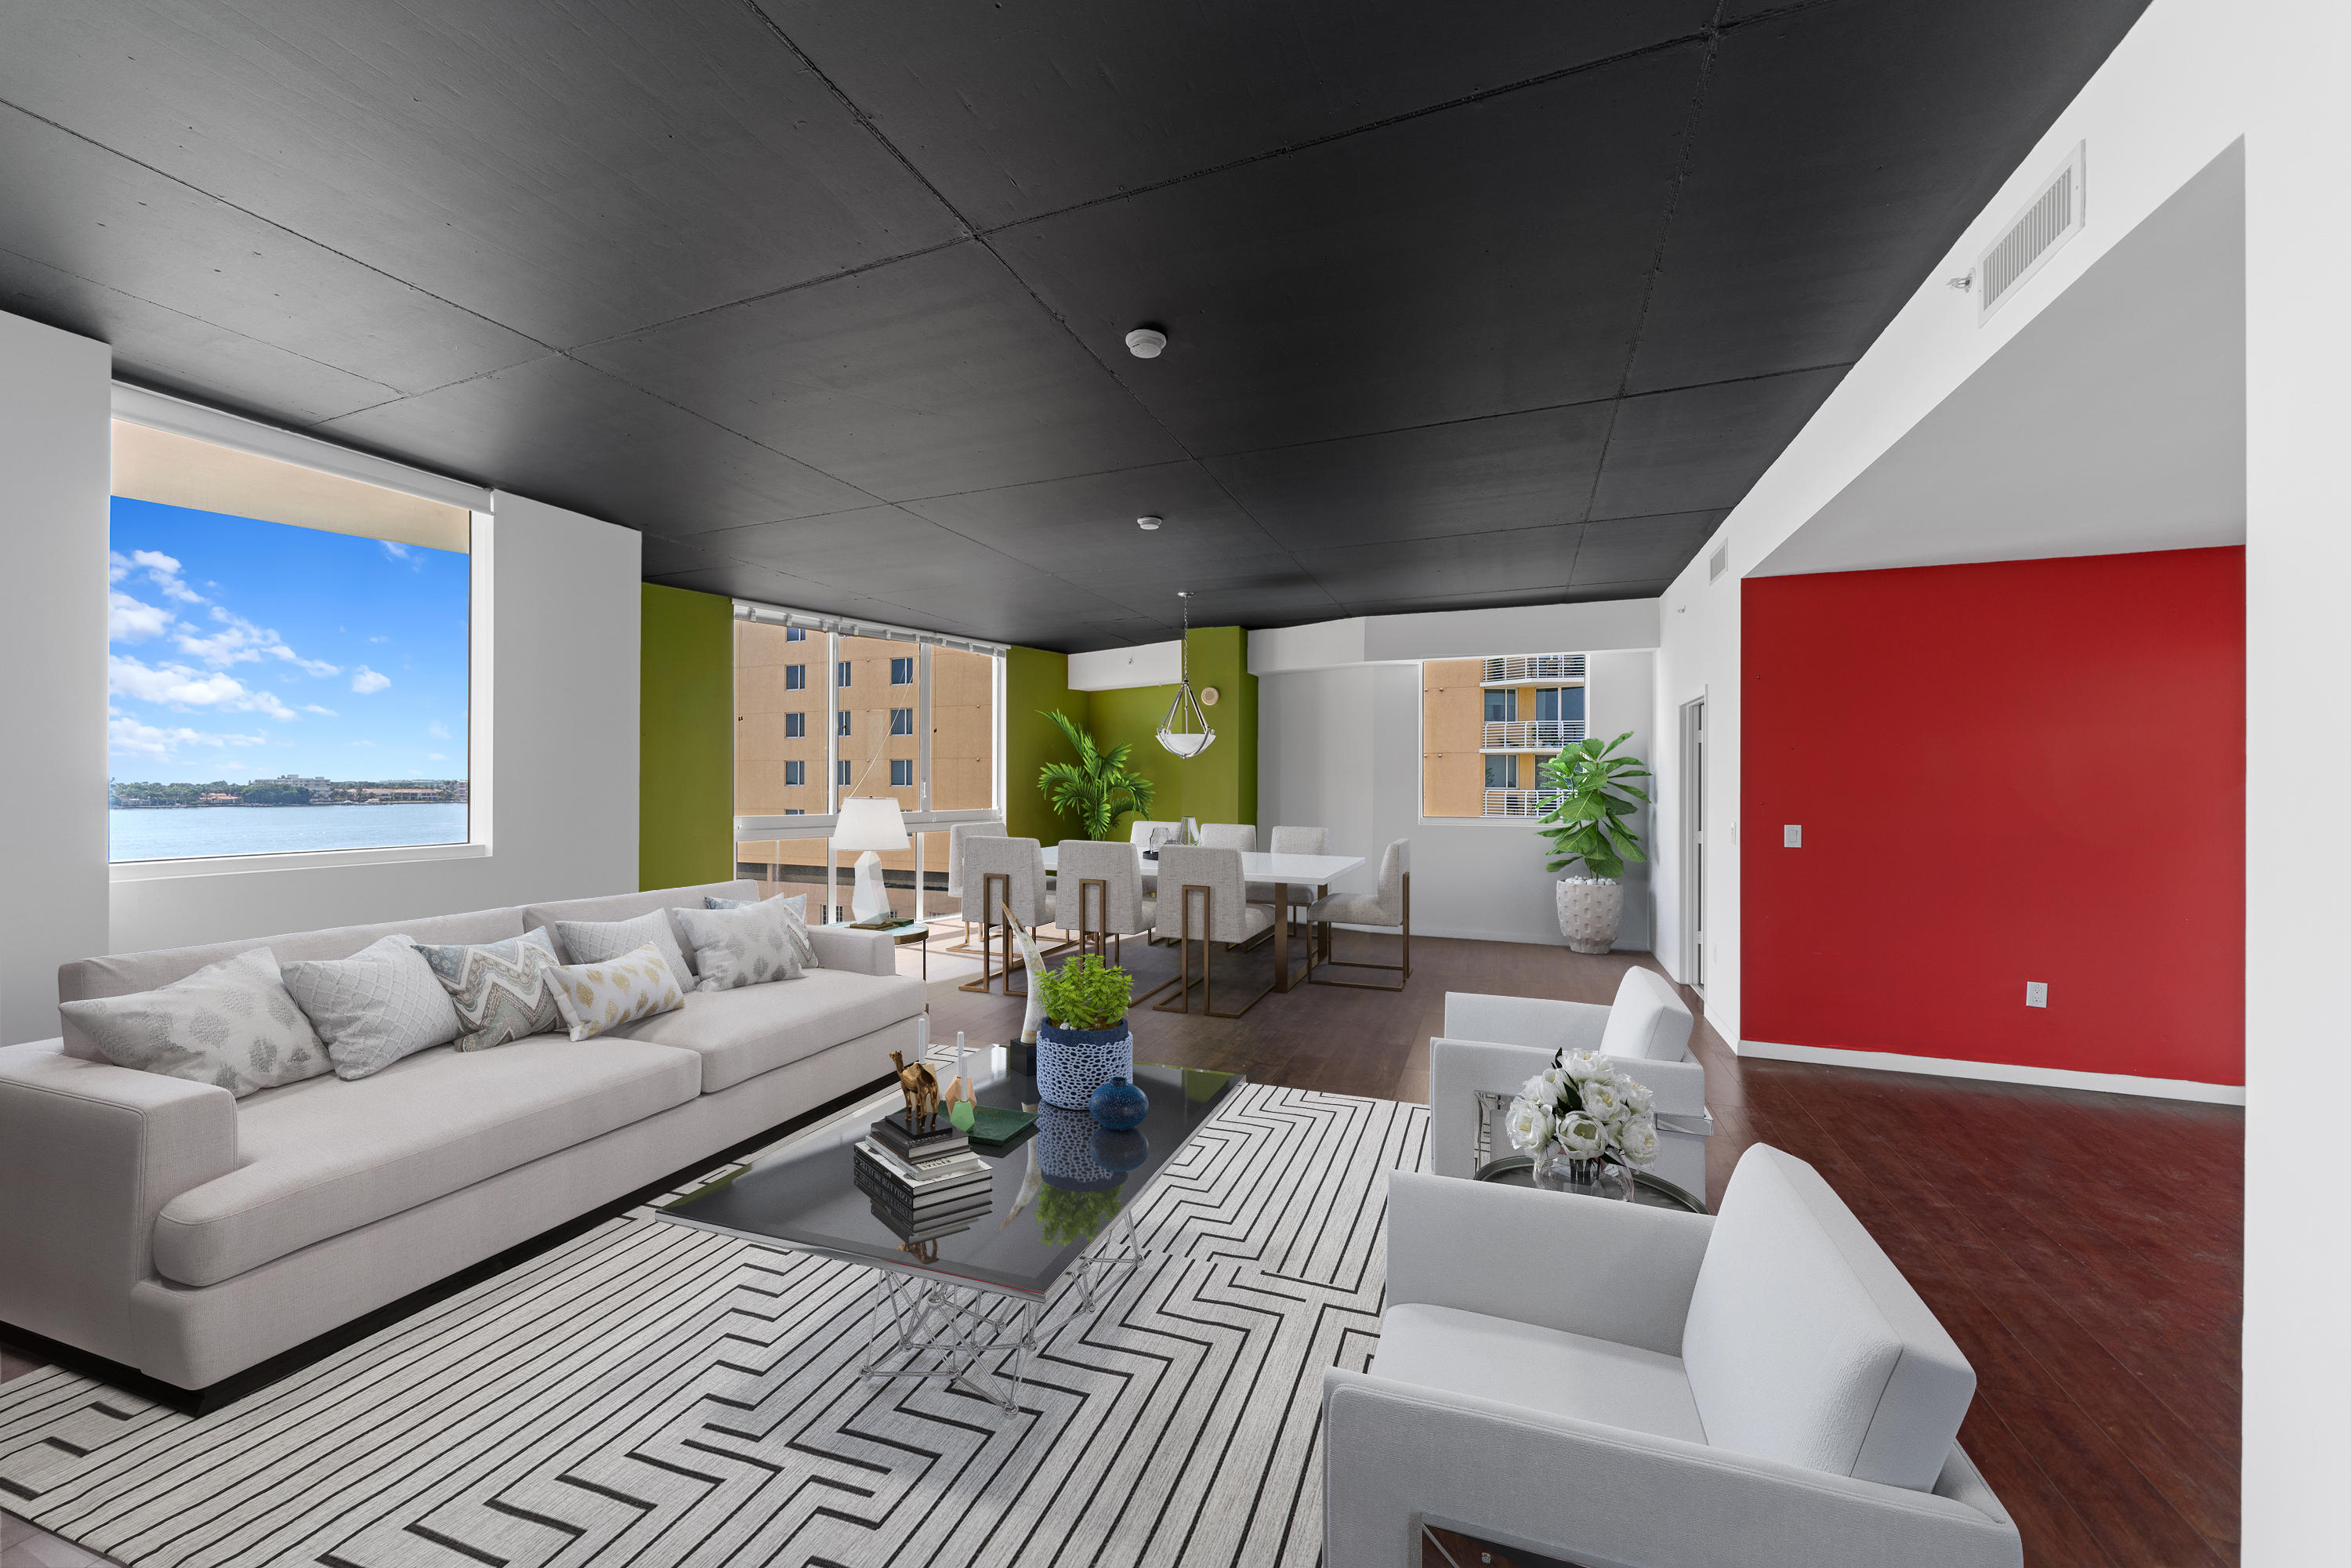 VILLA LOFTS WEST PALM BEACH